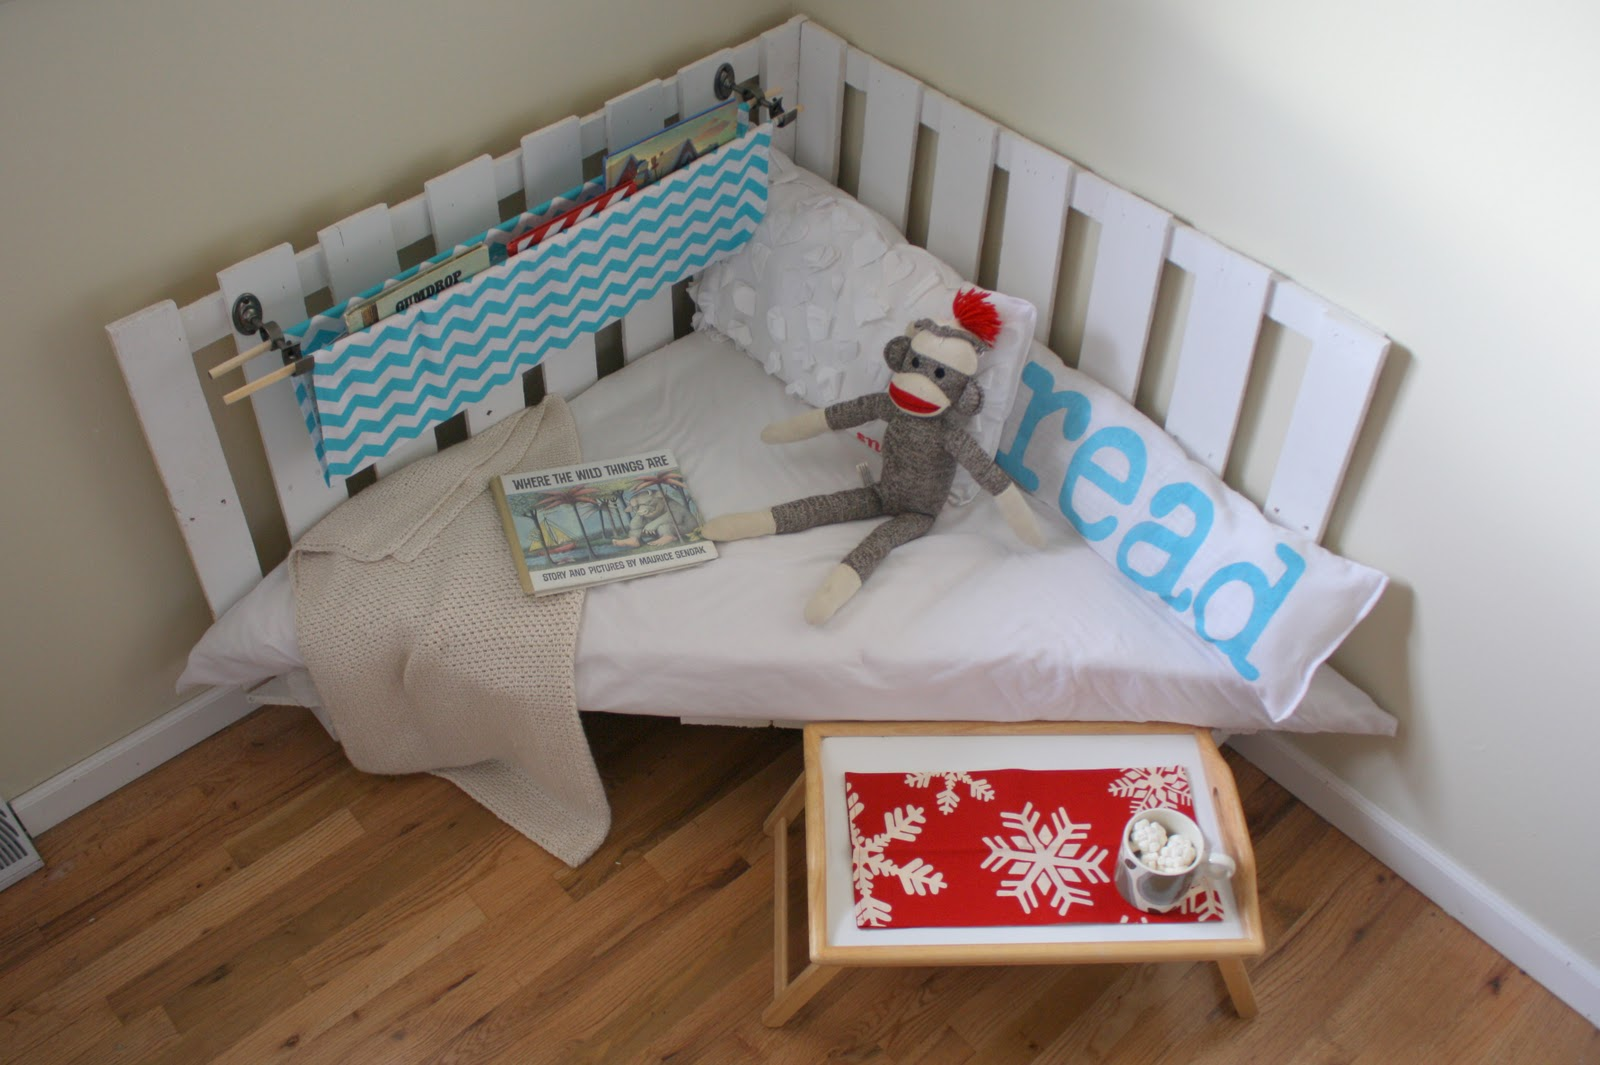 Reading Nook Chair Burlap Sashes How To Make A From Two Wooden Palettes Part 2